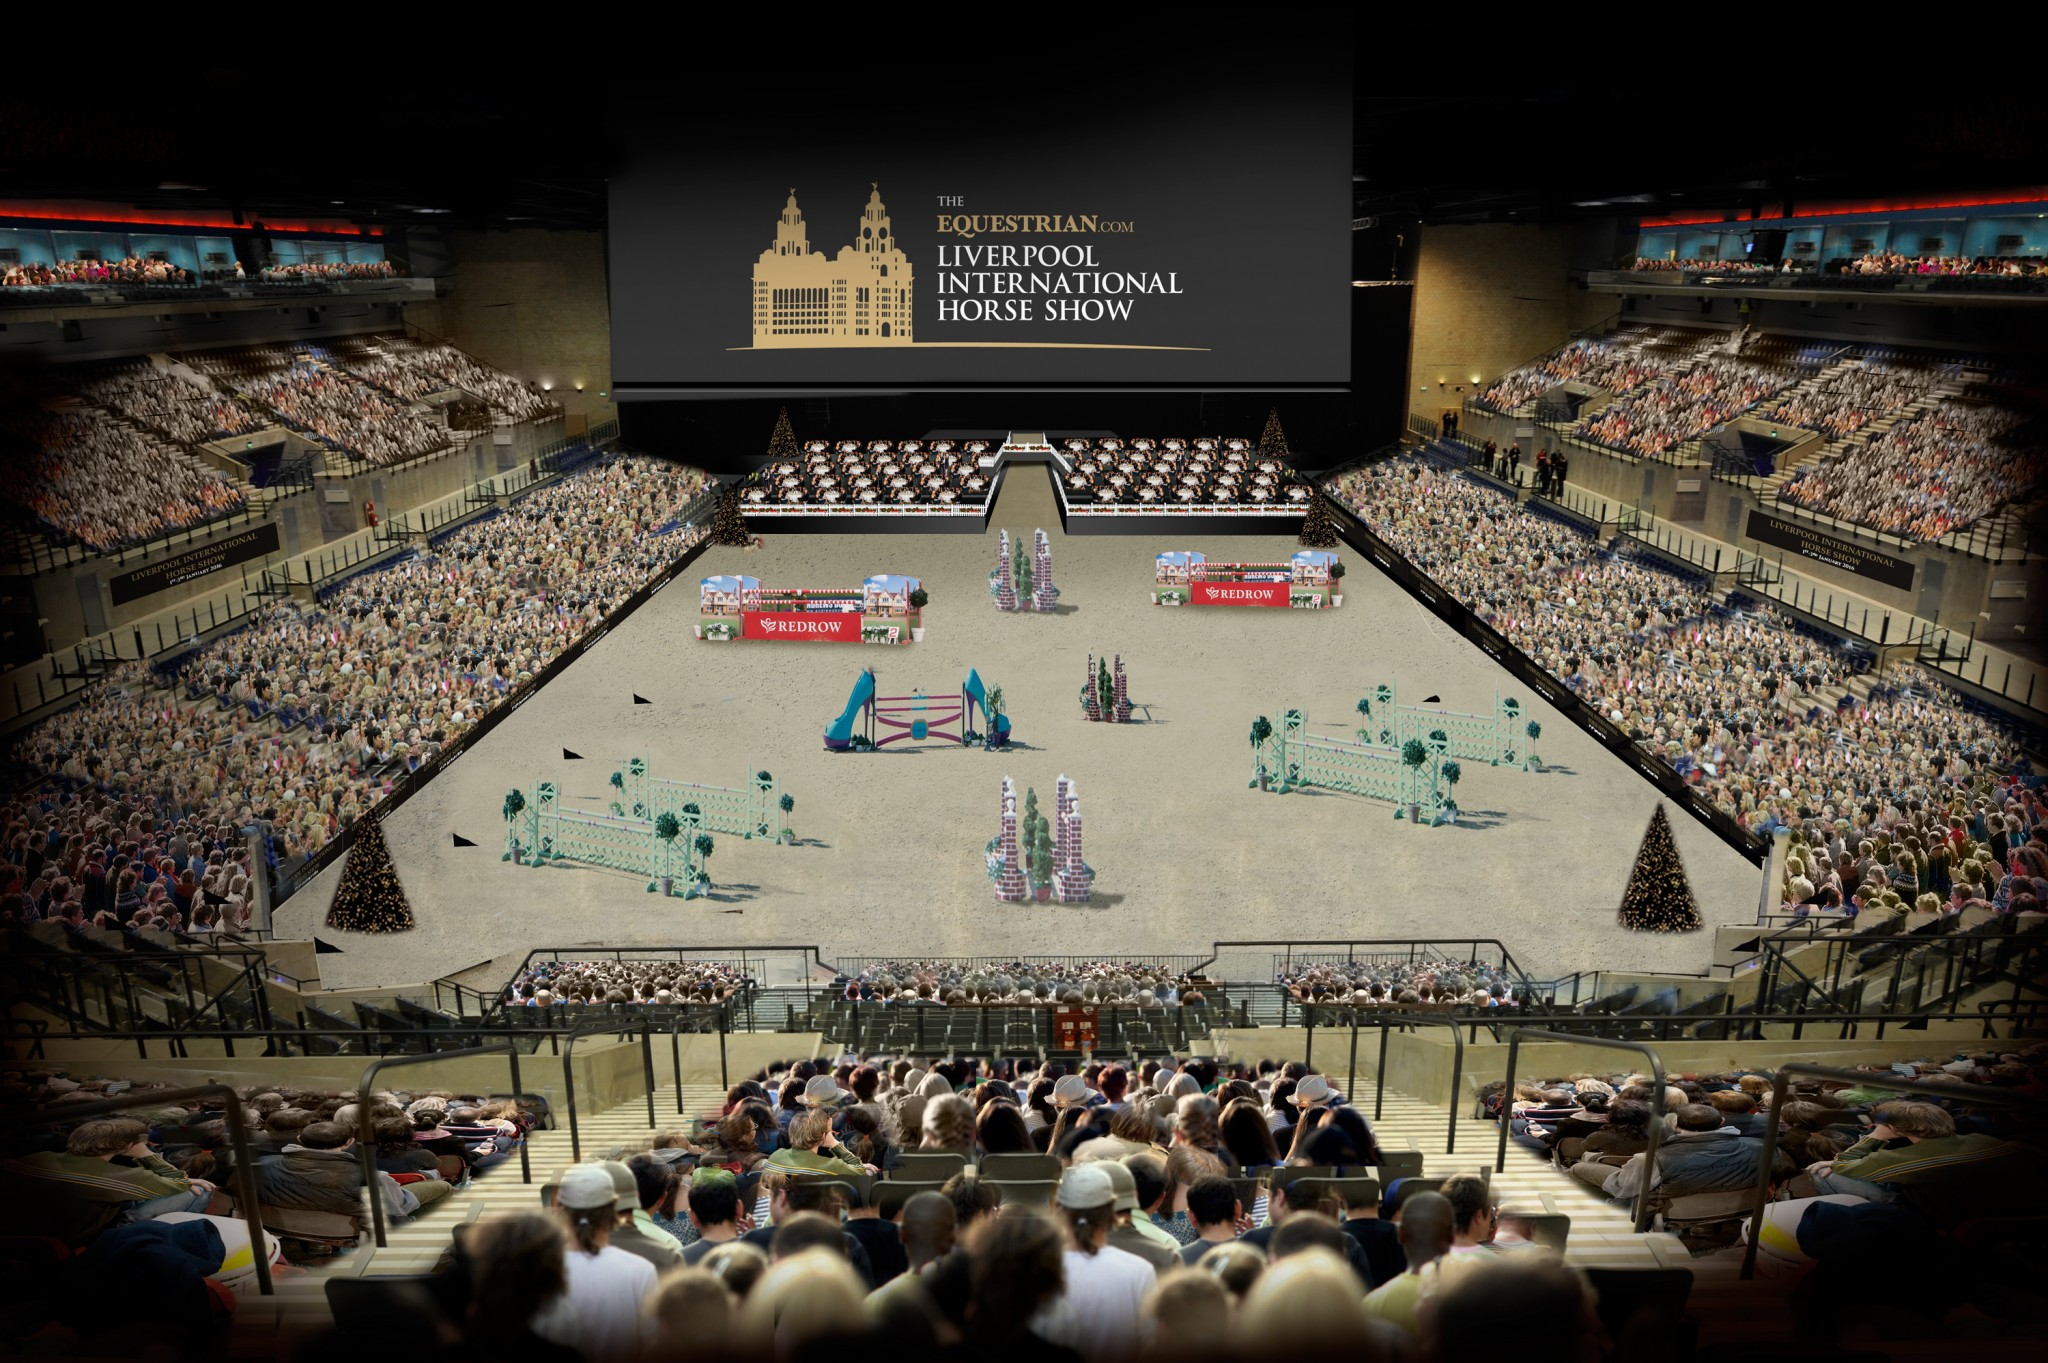 Arena - Equestrian.com Headline Sponsor at Liverpool International CSI**** Horse Show